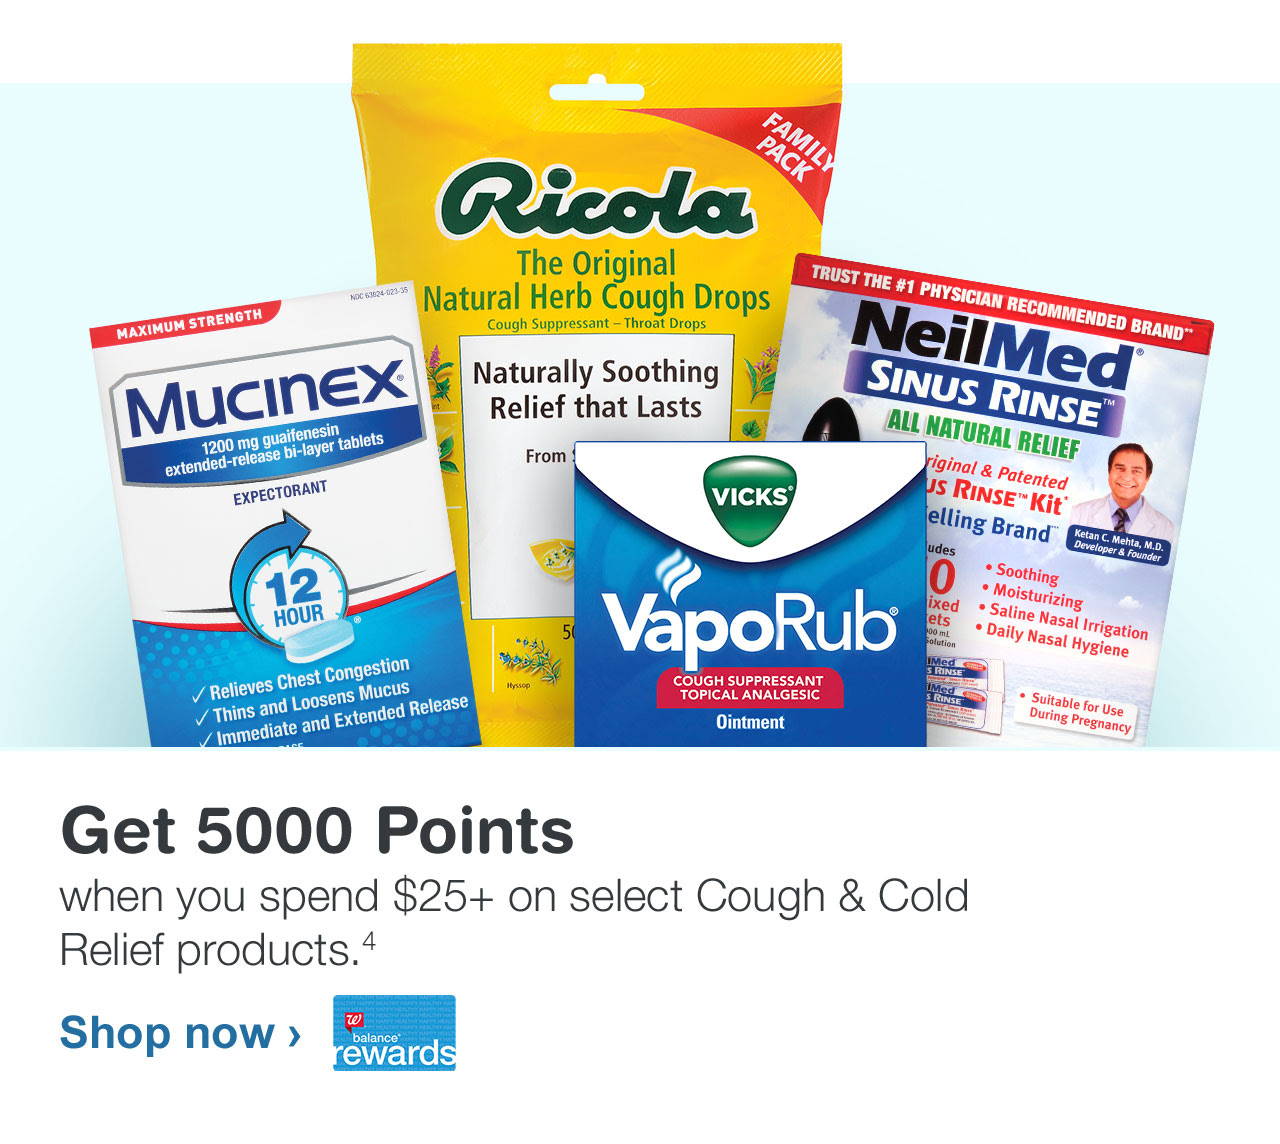 Get 5000 Points when you spend $25+ on select Cough & Cold Relief products